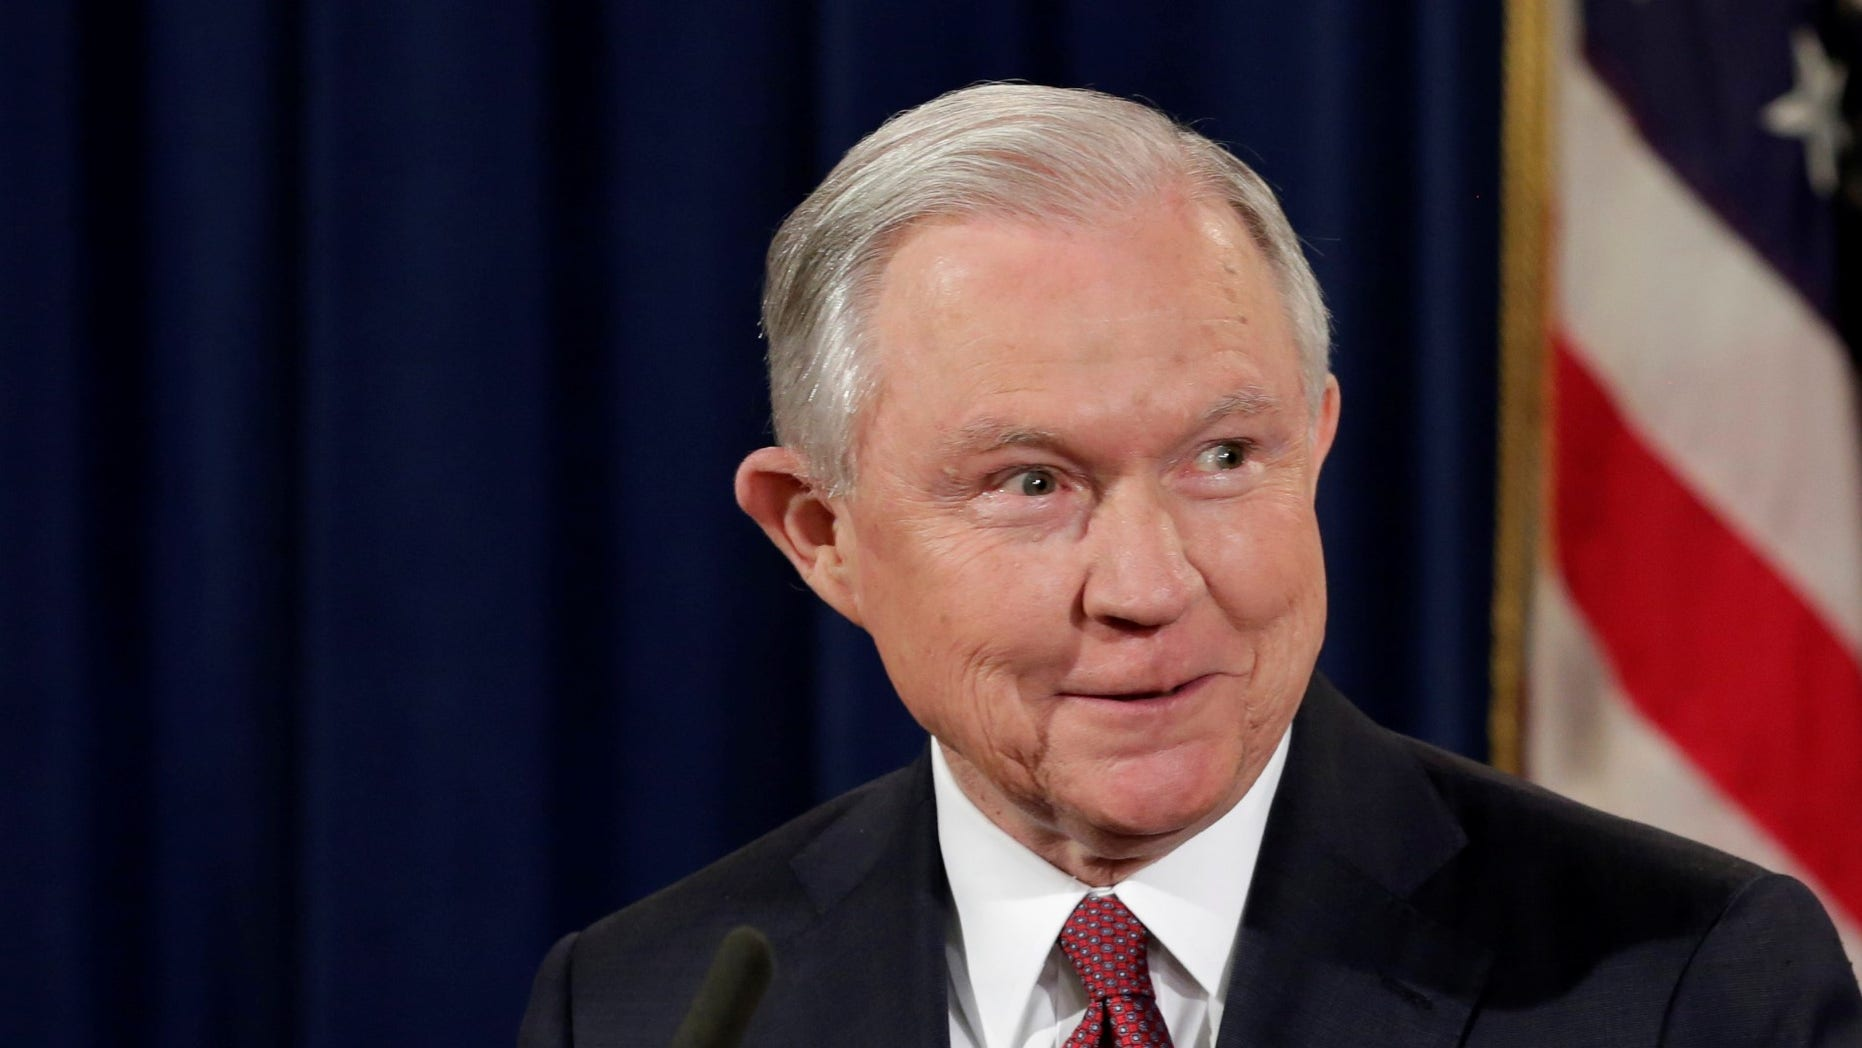 Attorney General Jeff Sessions speaks at a news conference to address the Deferred Action for Childhood Arrivals (DACA) program at the Justice Department in Washington, U.S., September 5, 2017.